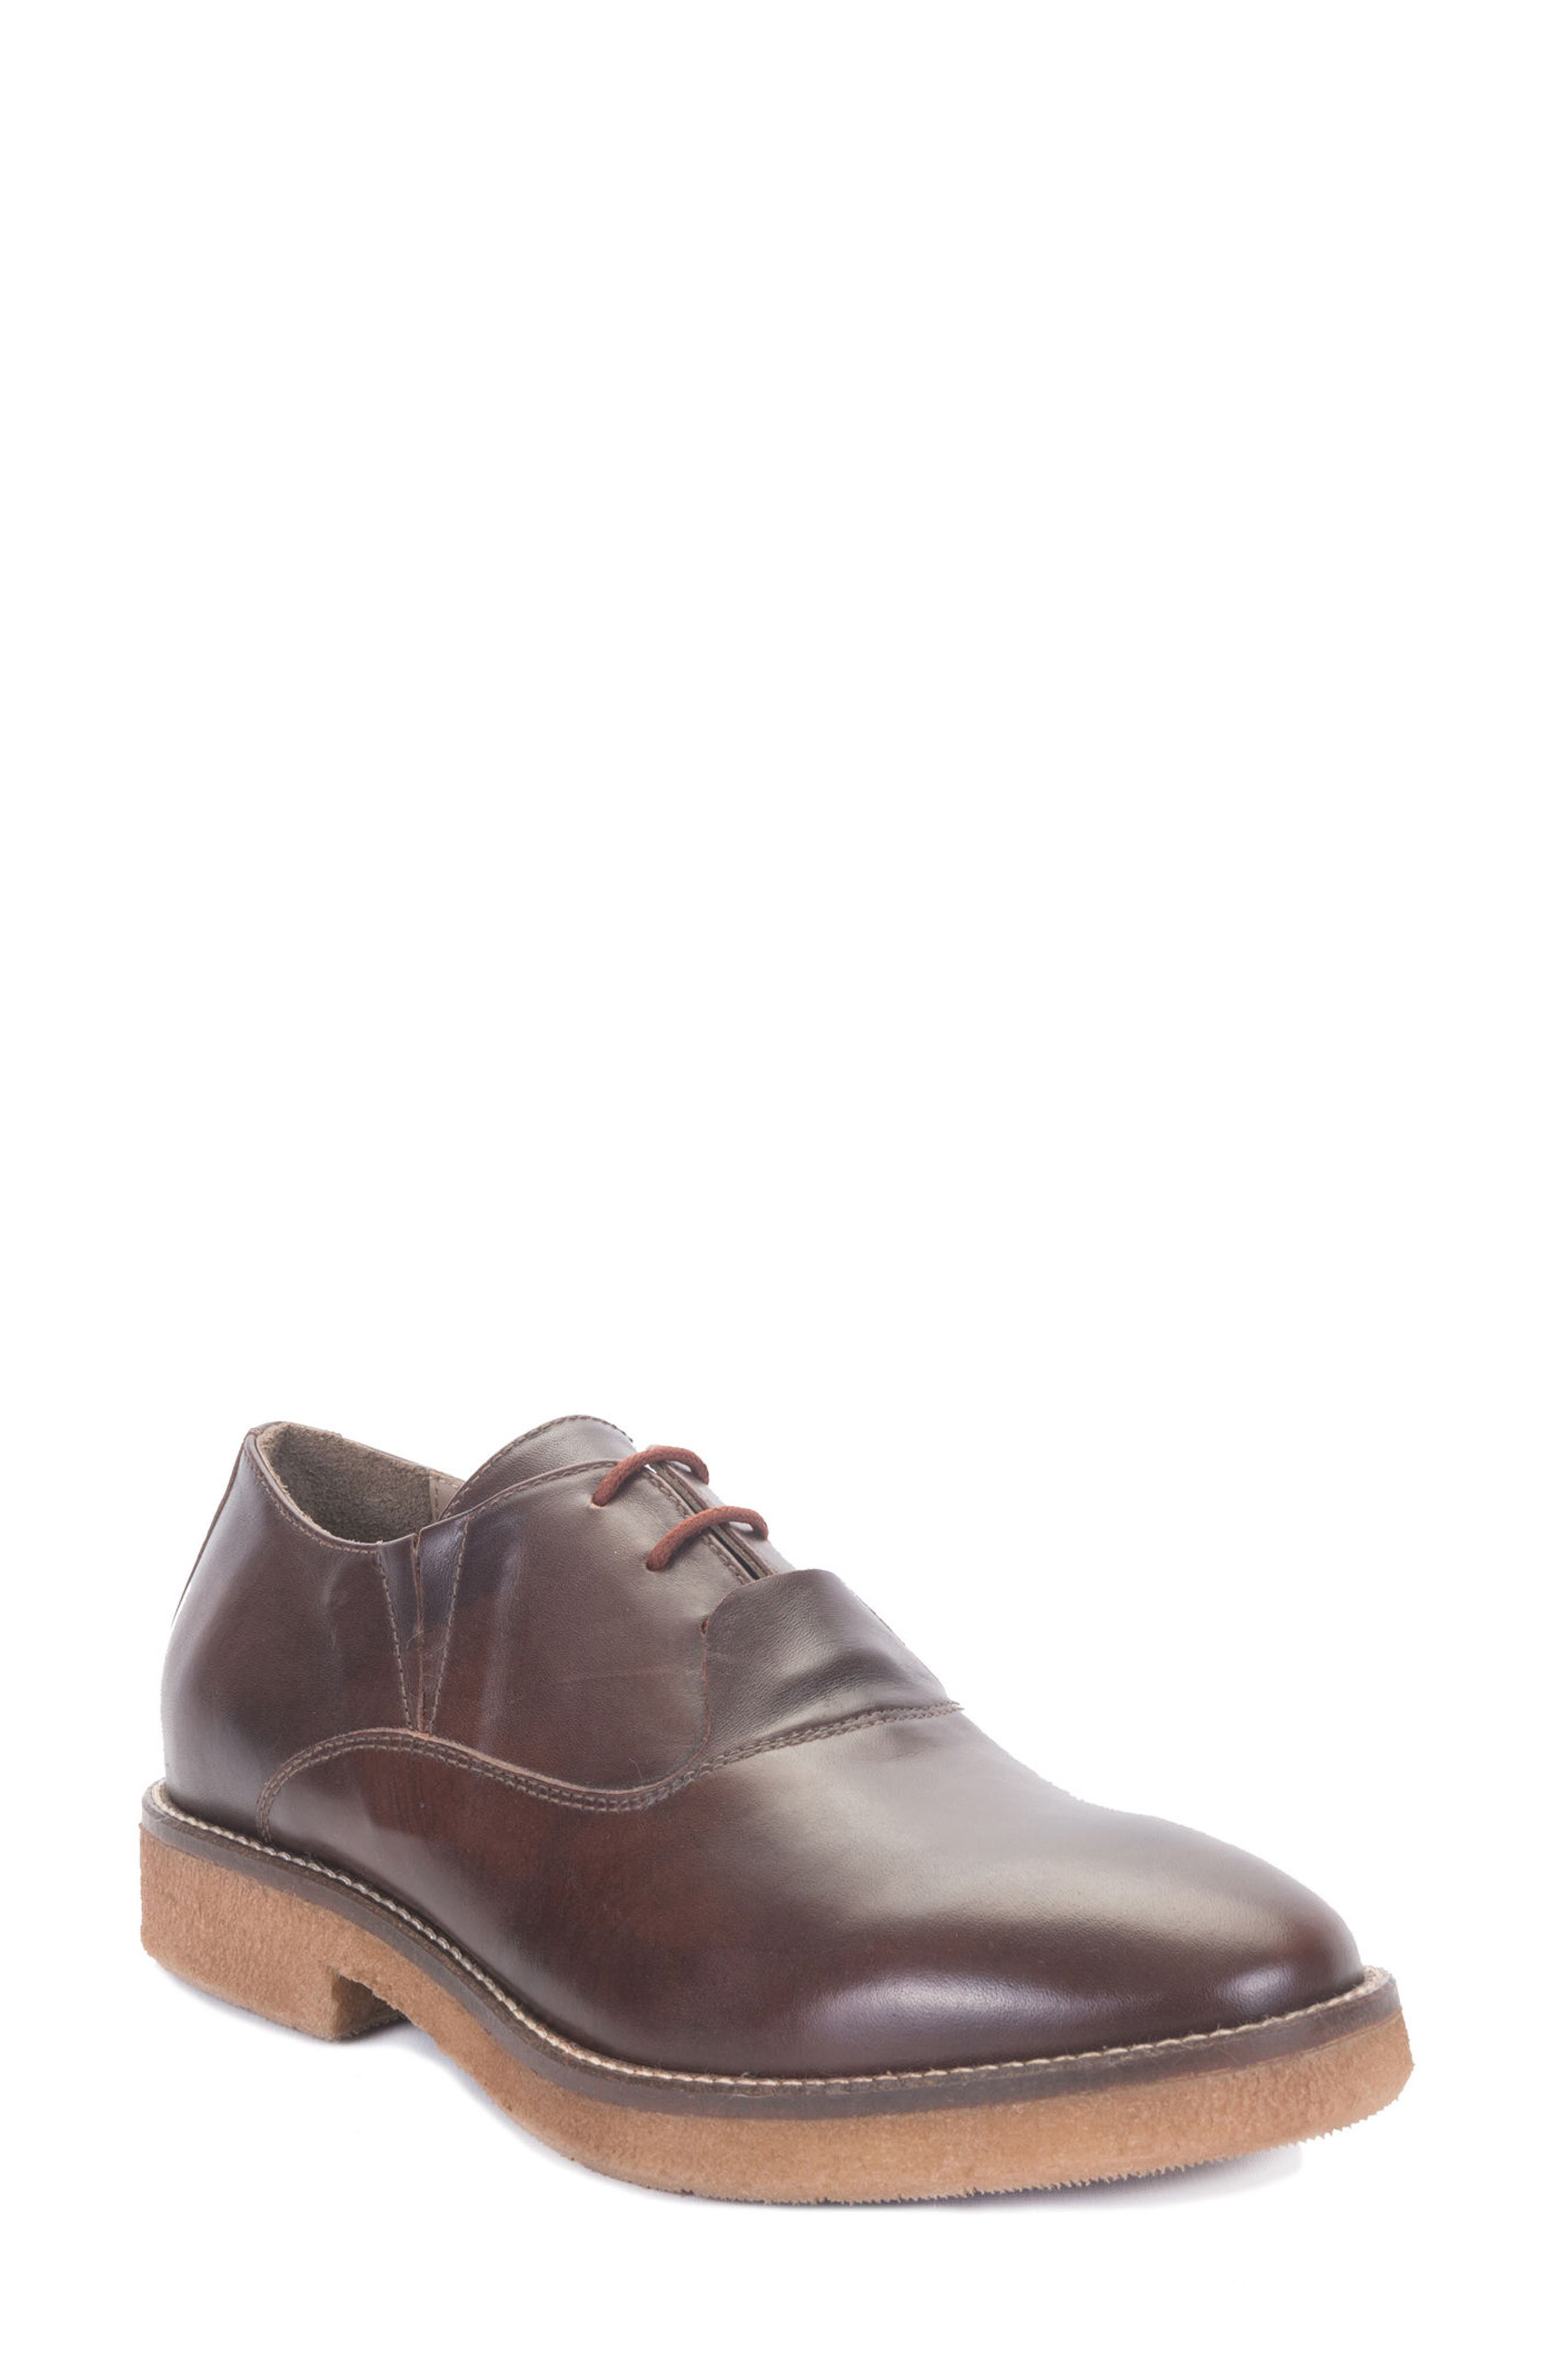 Molinella Water-Resistant Oxford,                             Main thumbnail 1, color,                             Ruggine Leather